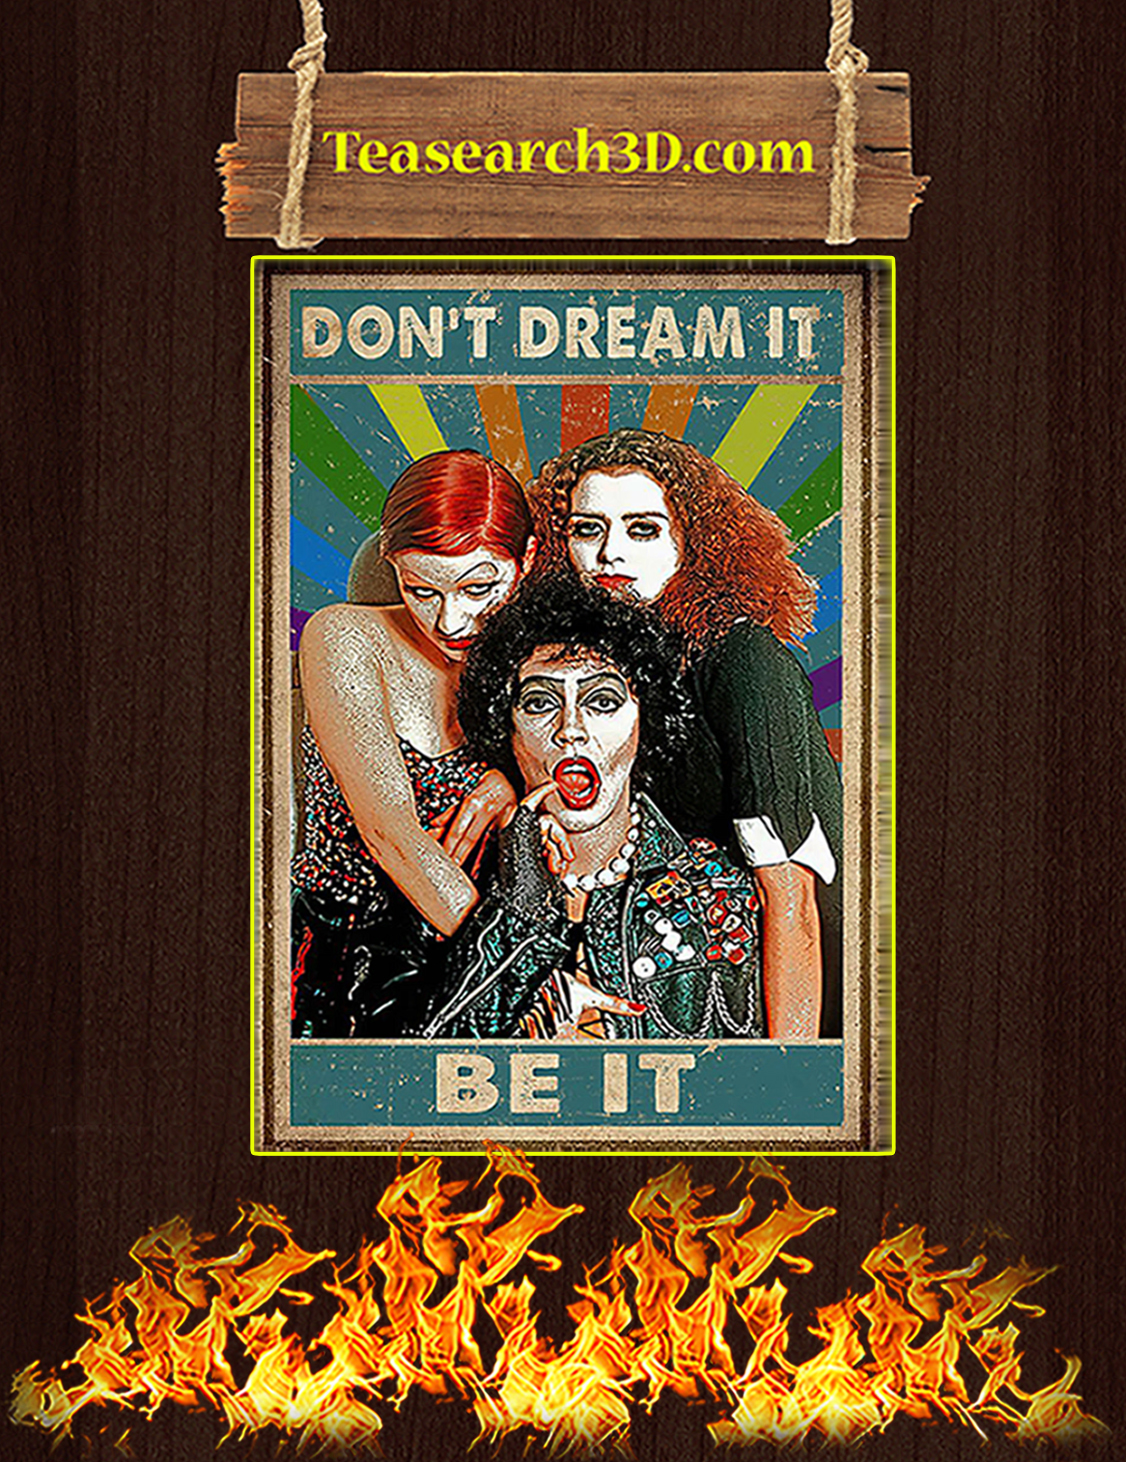 Don't dream it be it poster A3